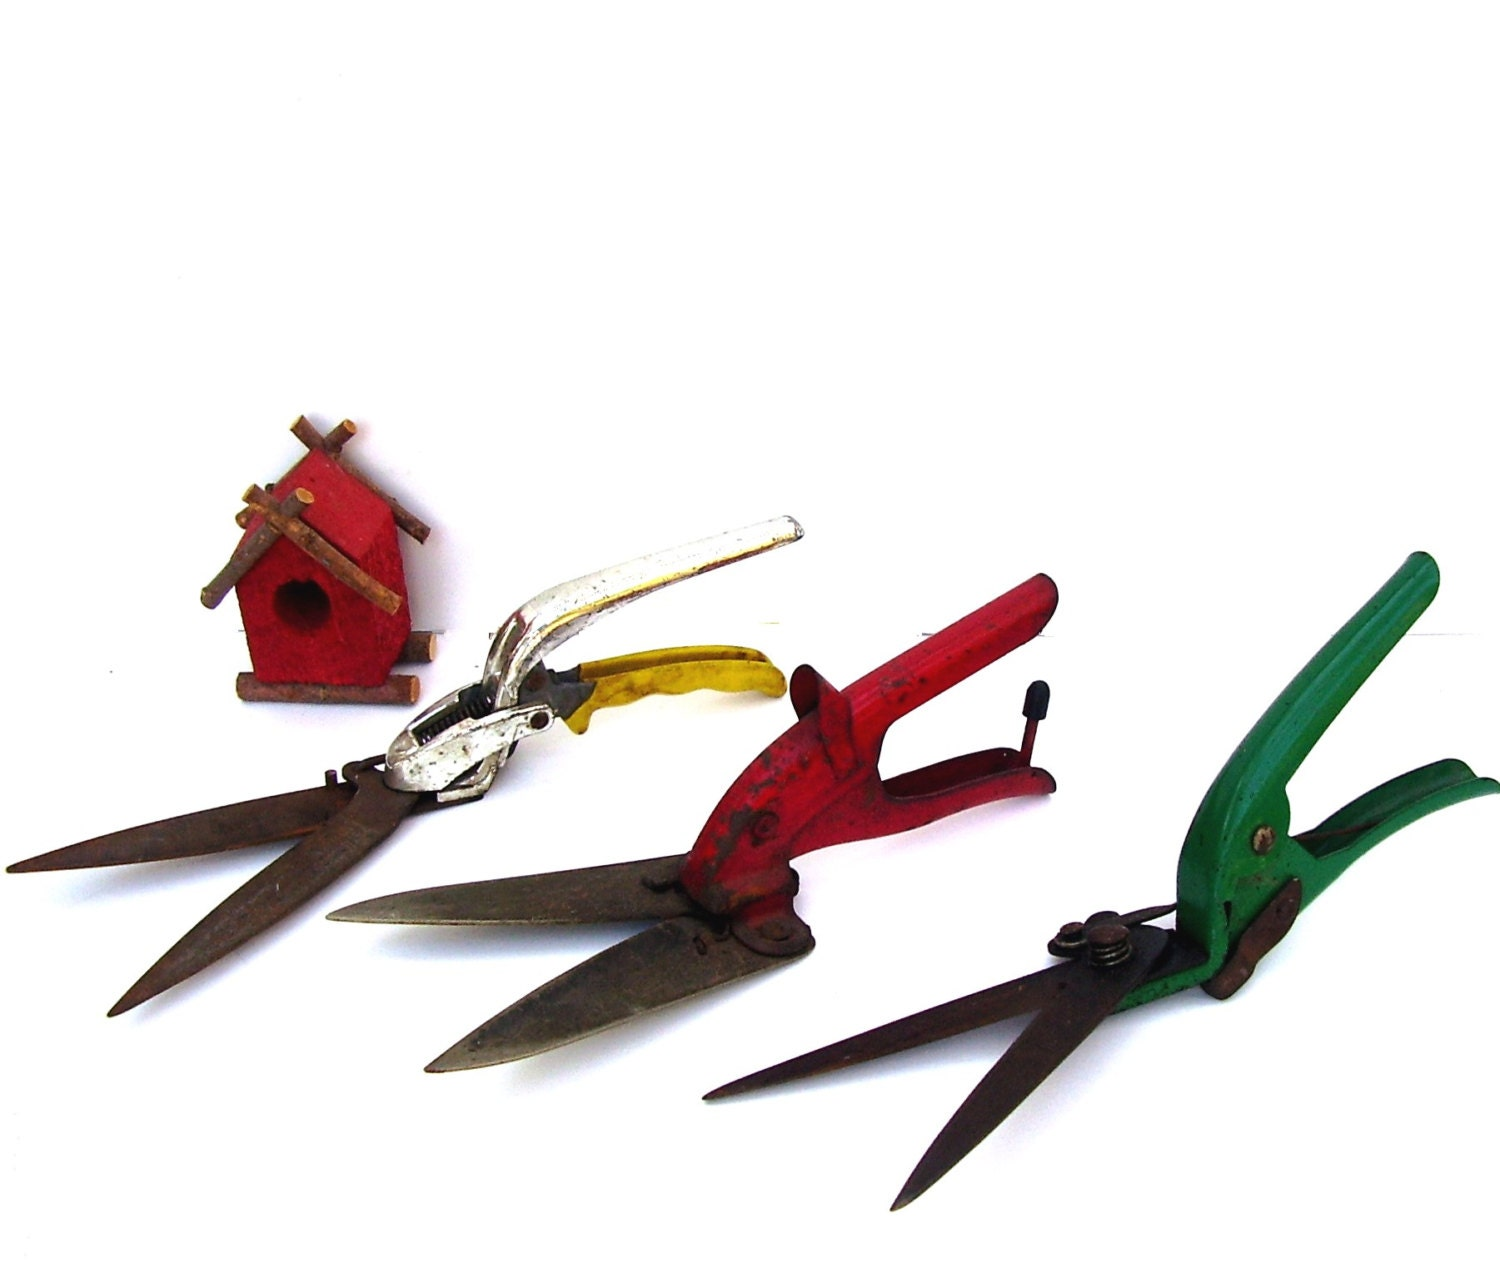 Vintage Garden Shears Antique Garden Tools 3 Rustic Colors - OceansideCastle